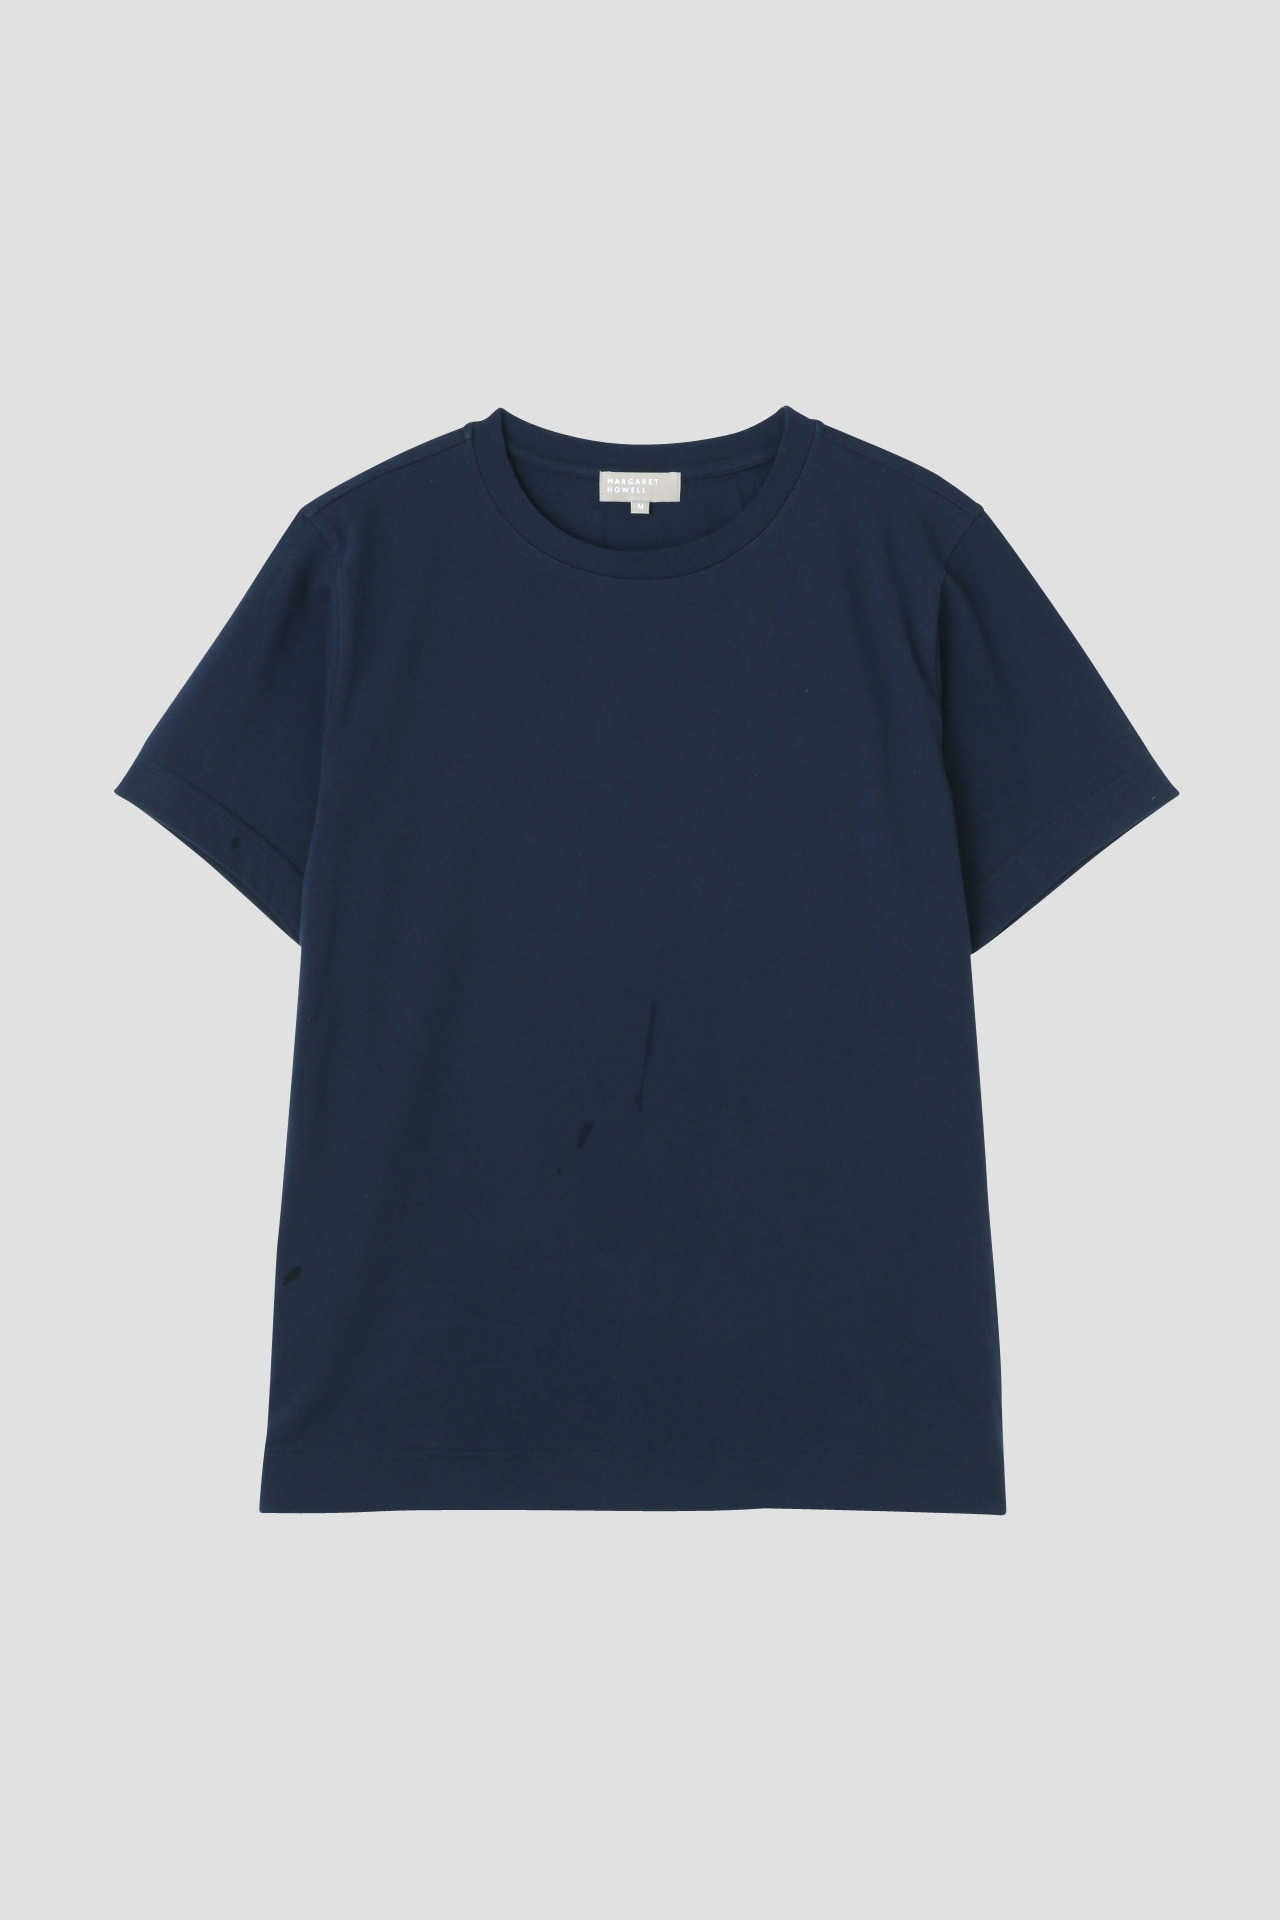 DRY COTTON JERSEY6